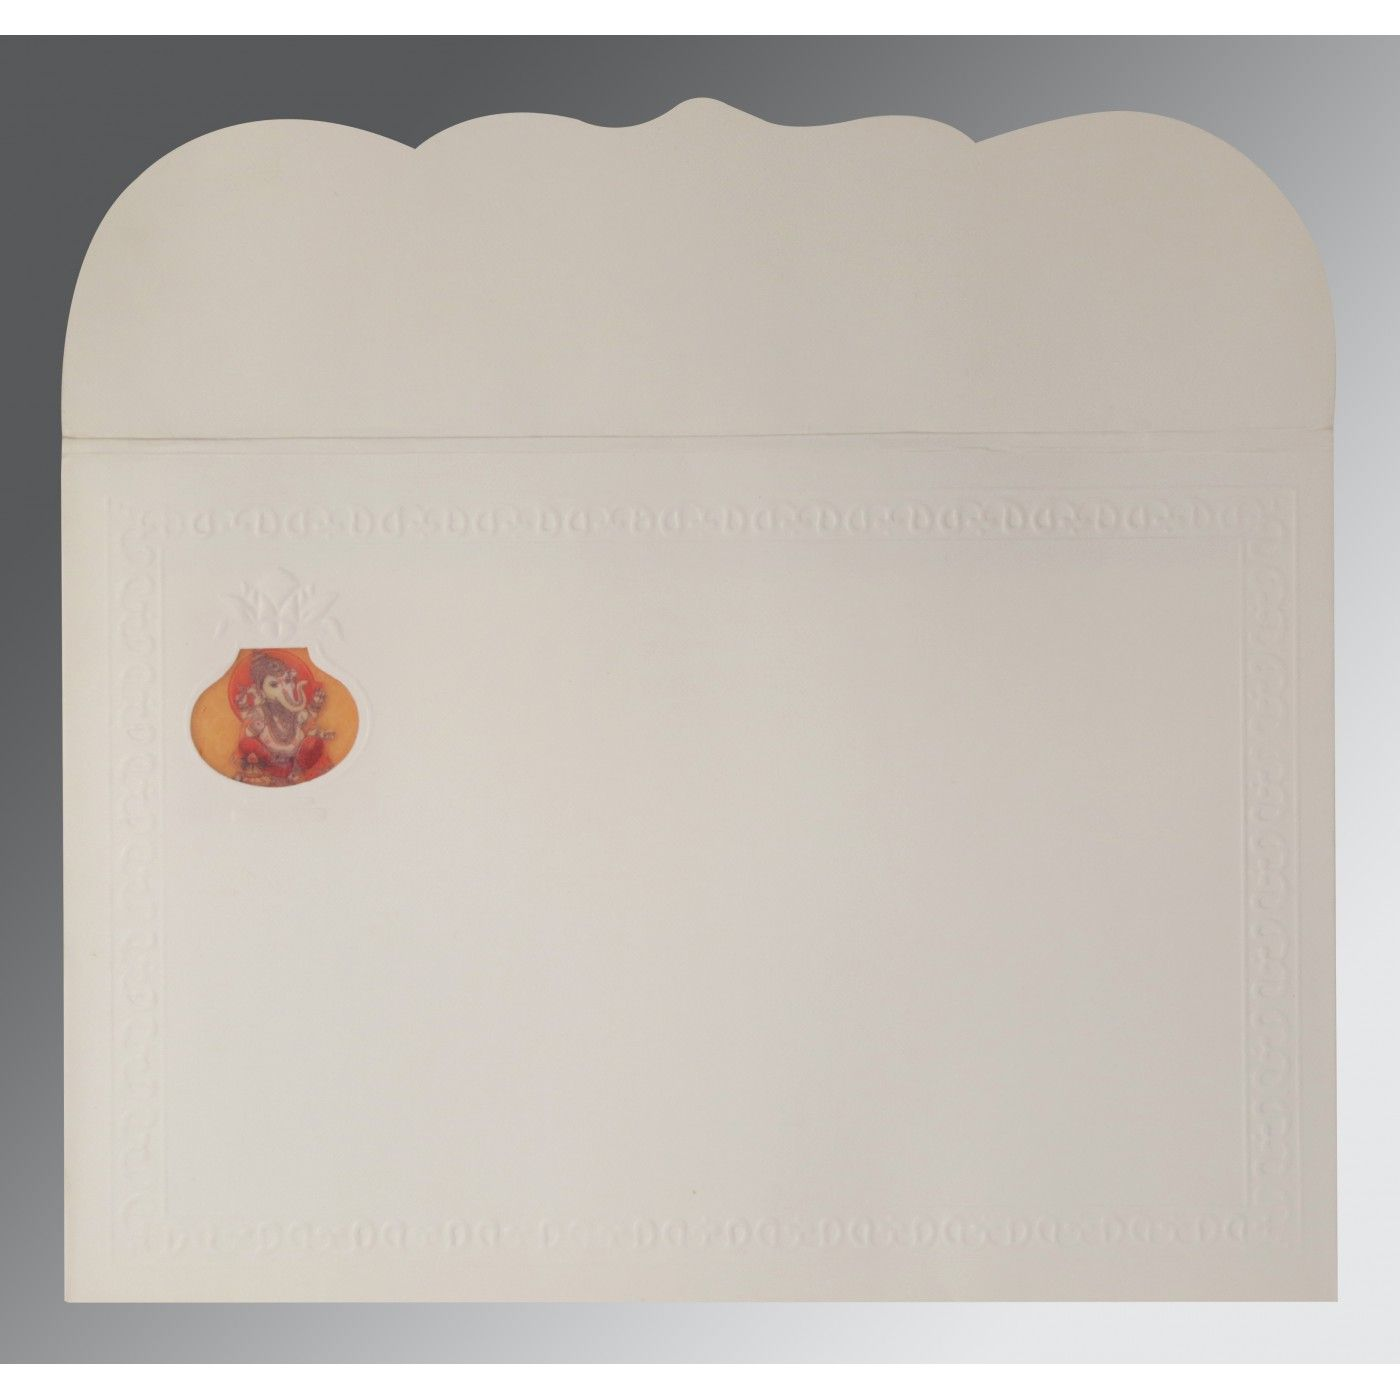 OFF-WHITE MATTE FOIL STAMPED WEDDING INVITATION : CW-2205 - IndianWeddingCards